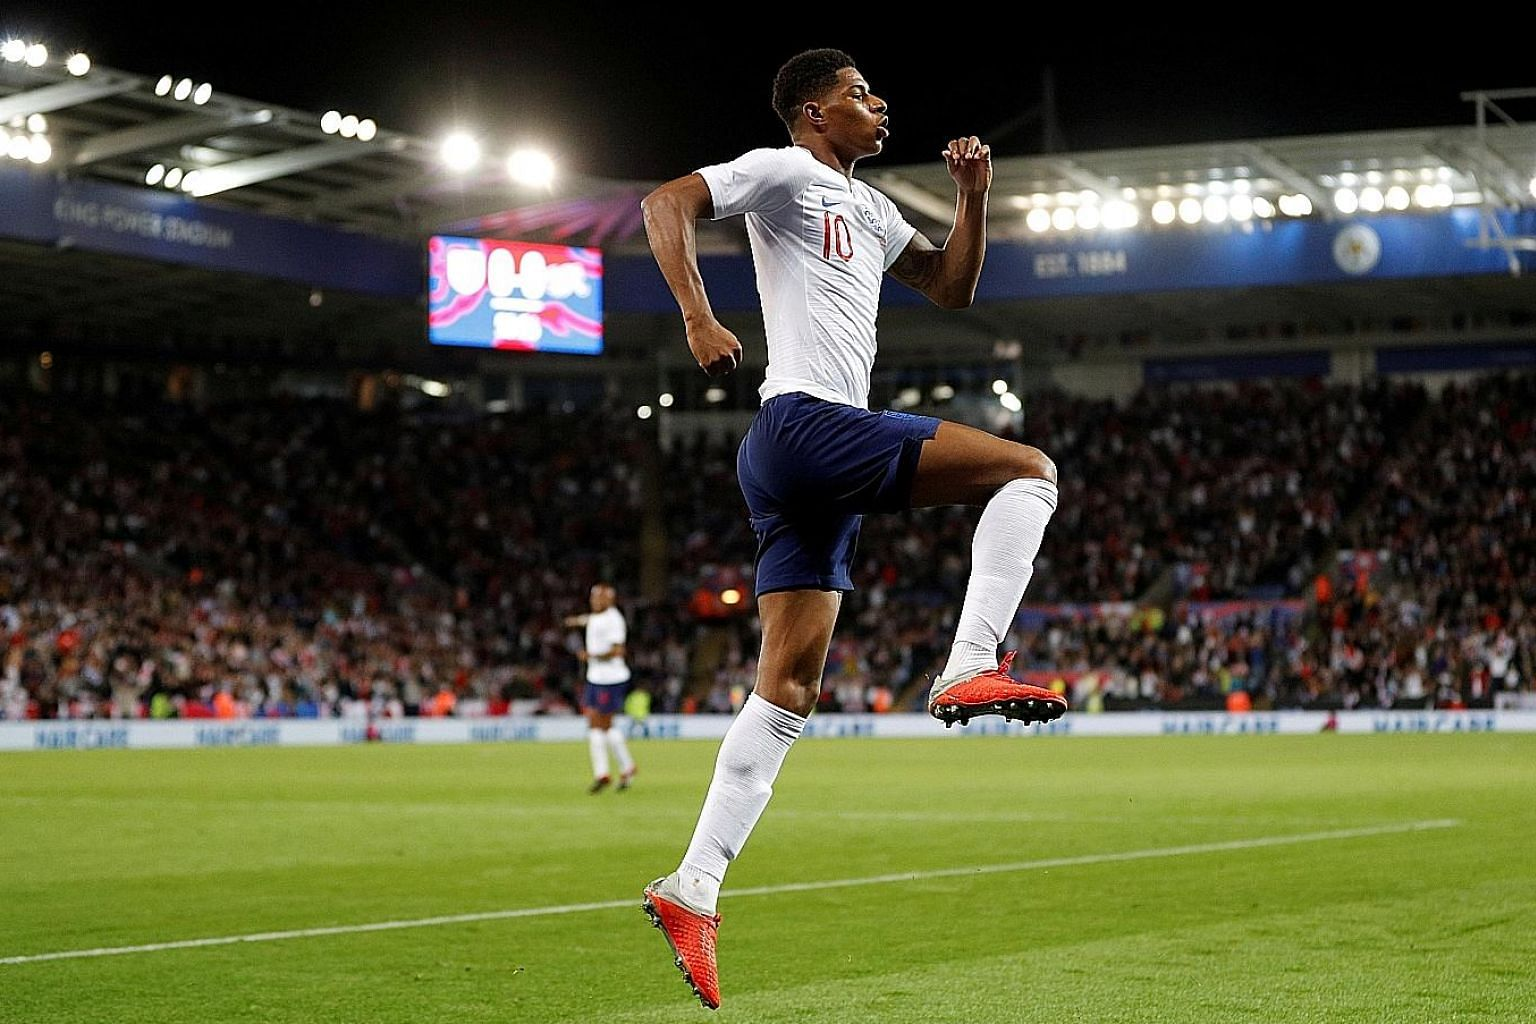 England's Marcus Rashford celebrating after scoring the winner in the 1-0 friendly win over Switzerland. It was also the fifth international goal for the striker, who started the match in place of captain Harry Kane.